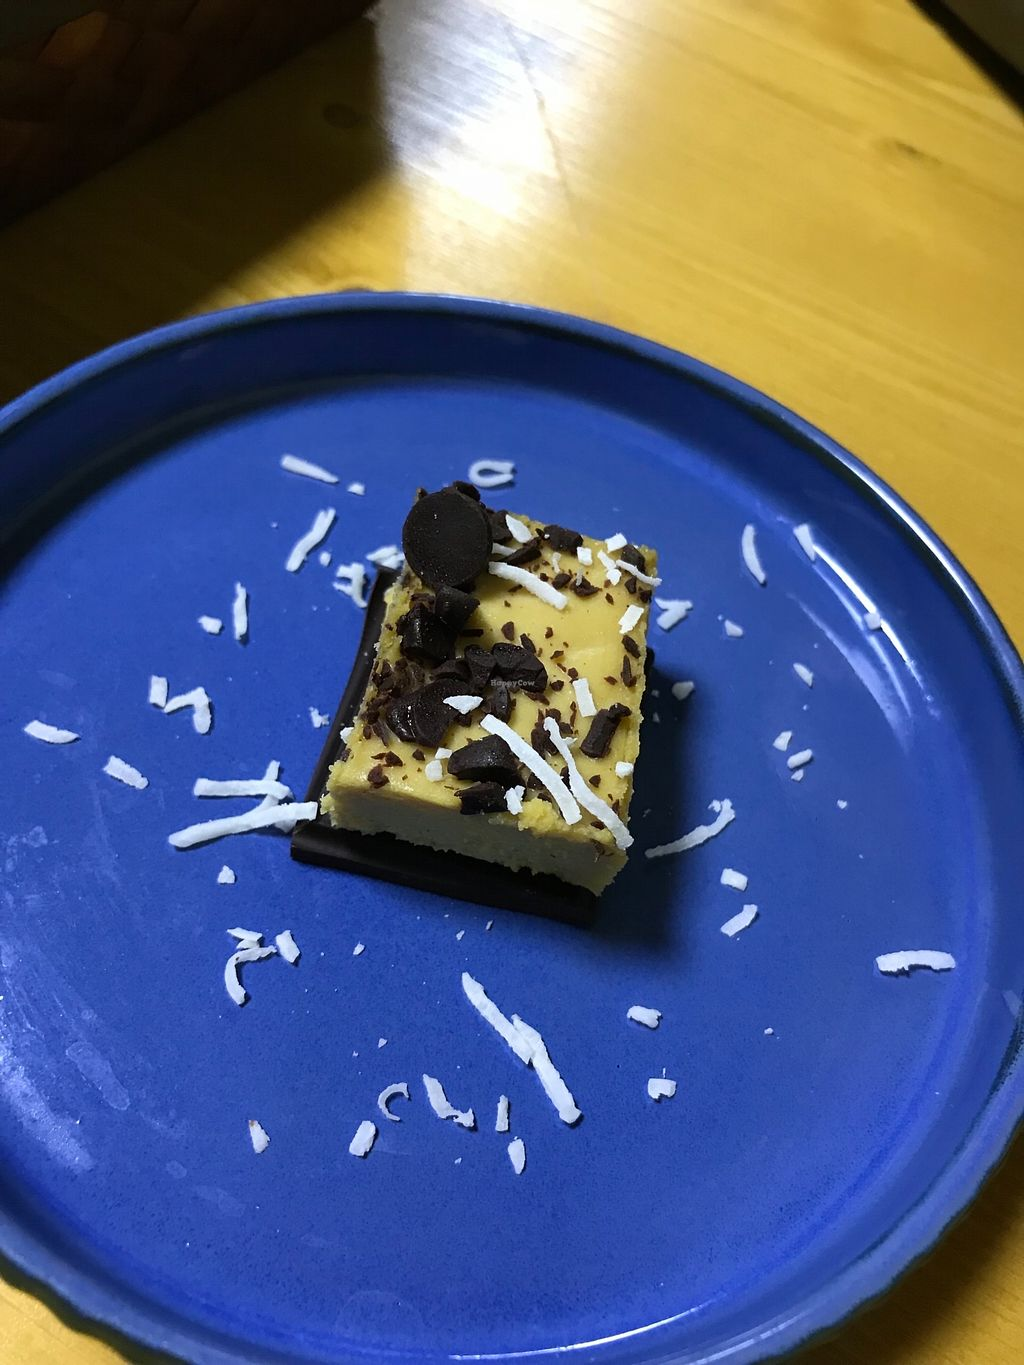 """Photo of Jack and the Beanstalk  by <a href=""""/members/profile/happyeats"""">happyeats</a> <br/>Cashew cake w/ dark chocolate!  <br/> January 22, 2018  - <a href='/contact/abuse/image/47910/349749'>Report</a>"""